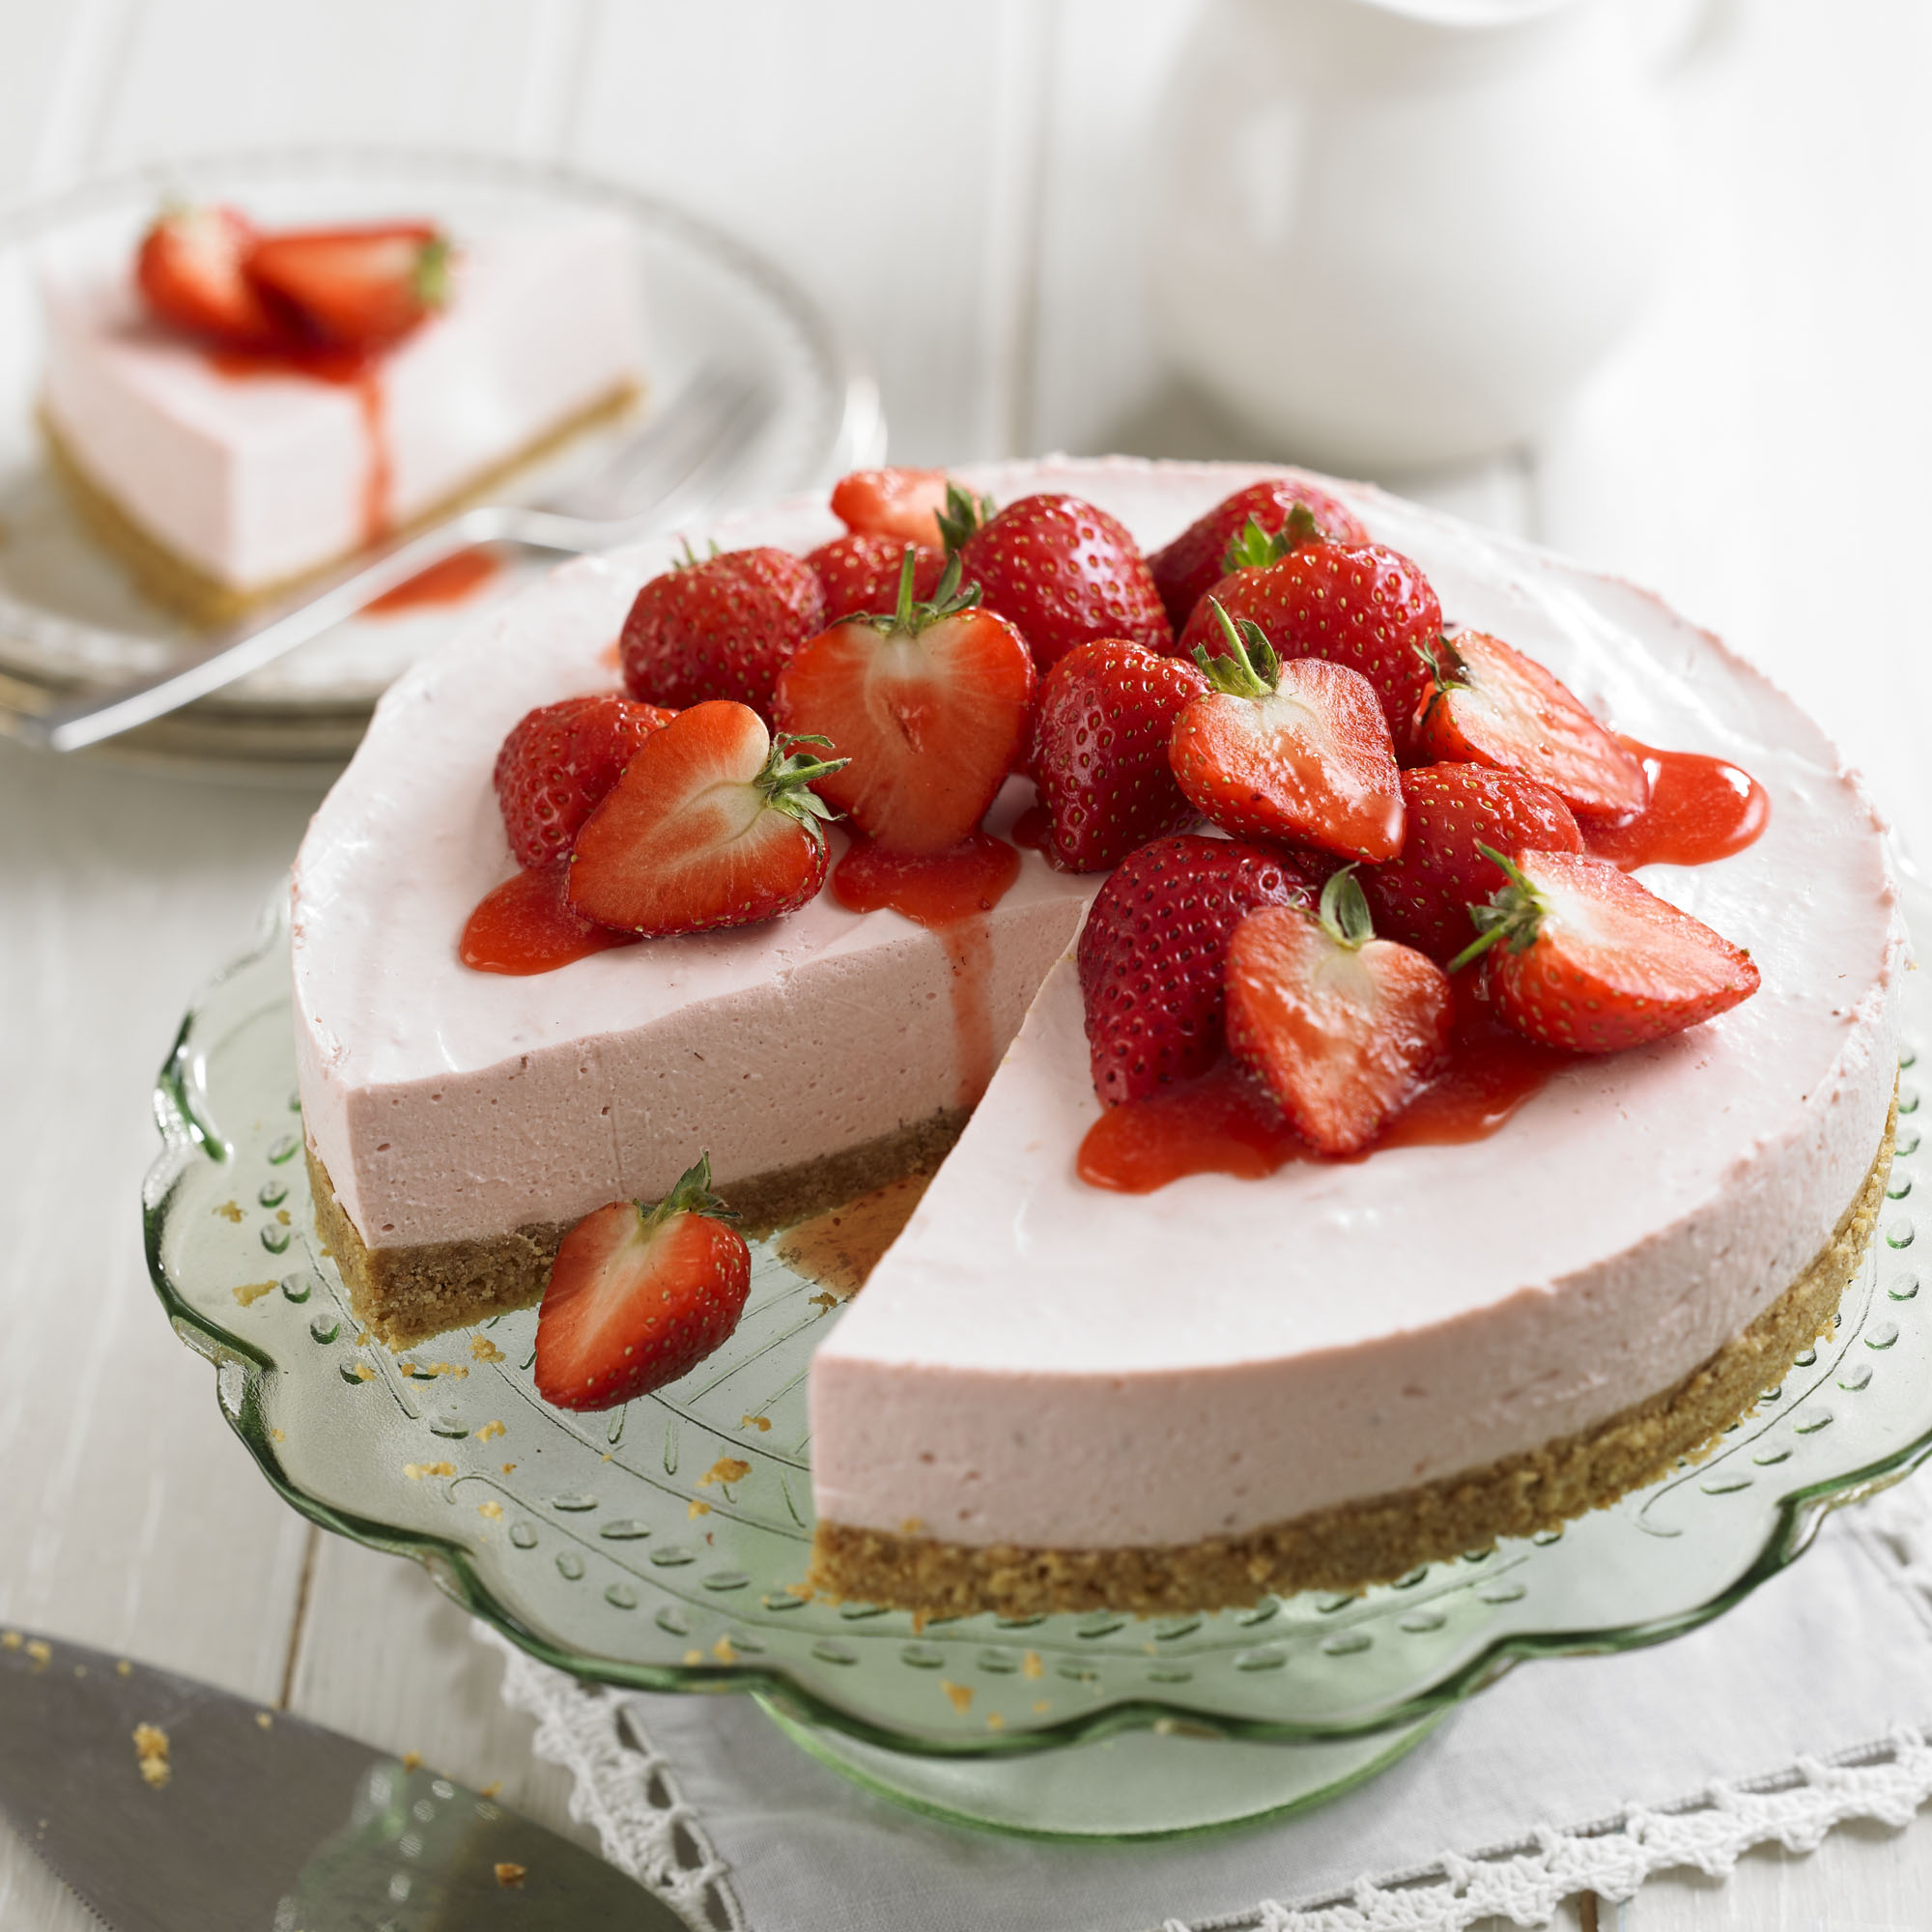 Strawberry Cheesecake With Strawberry Sauce